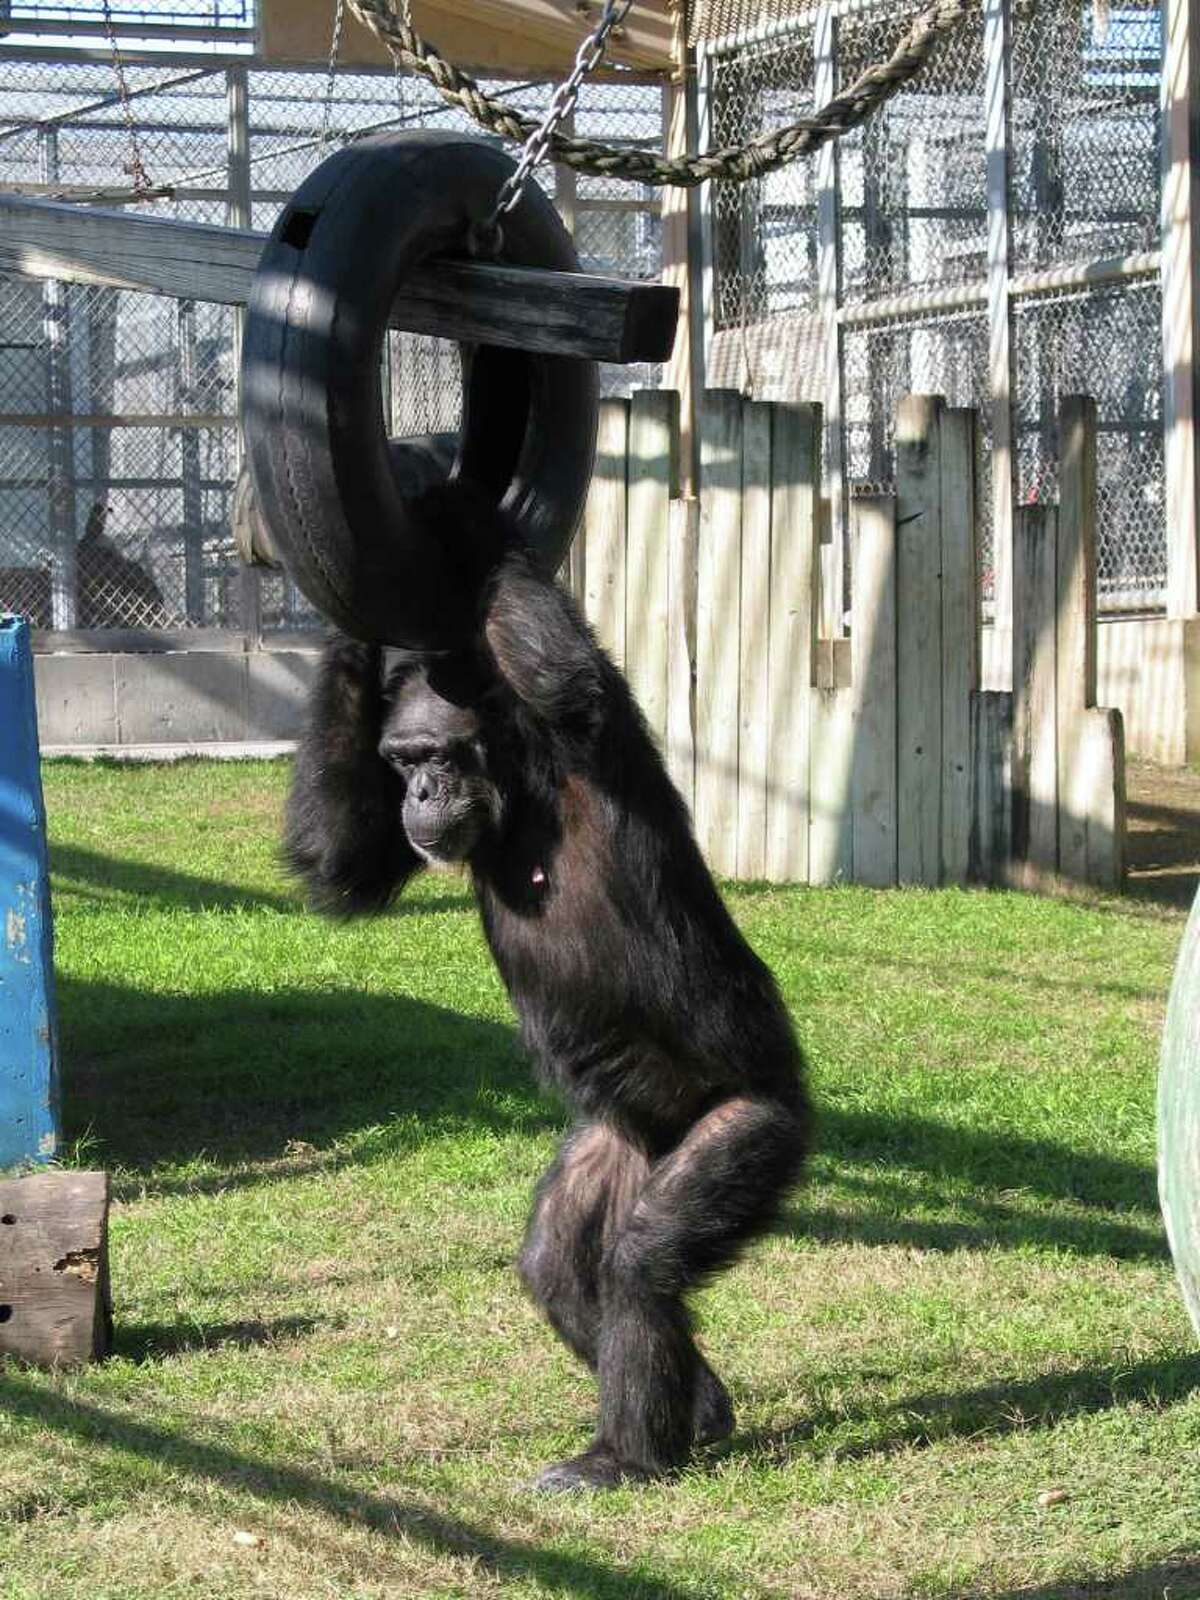 Chimpanzees at Texas Biomedical Research Institute, one of a very few research facilities in the United States that perform research on the highly intelligent animals.